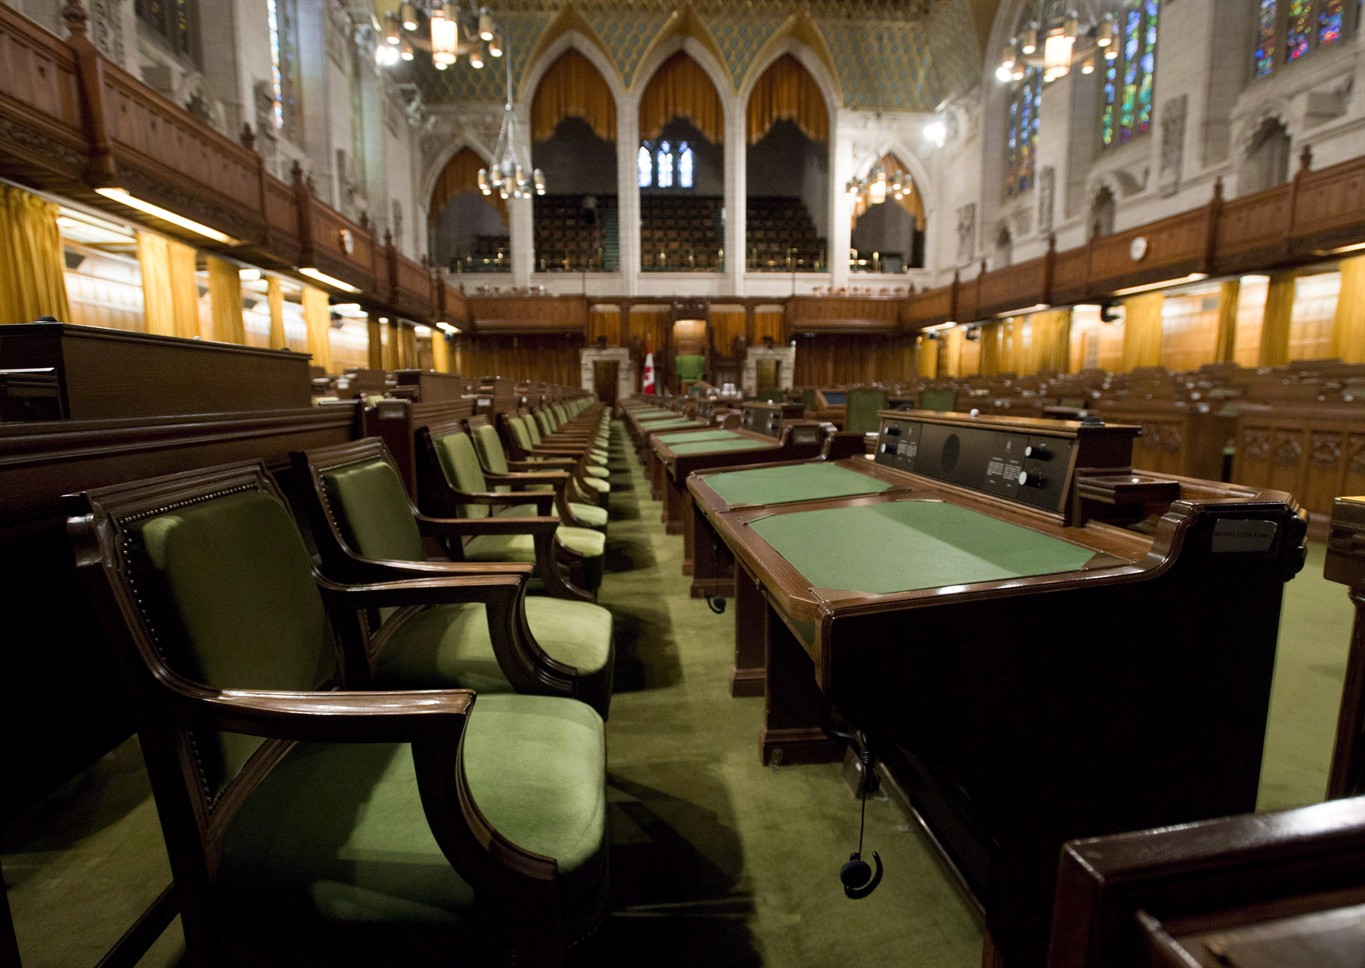 Female Mps Unsure What Metoo Movement Means For Parliament Hill